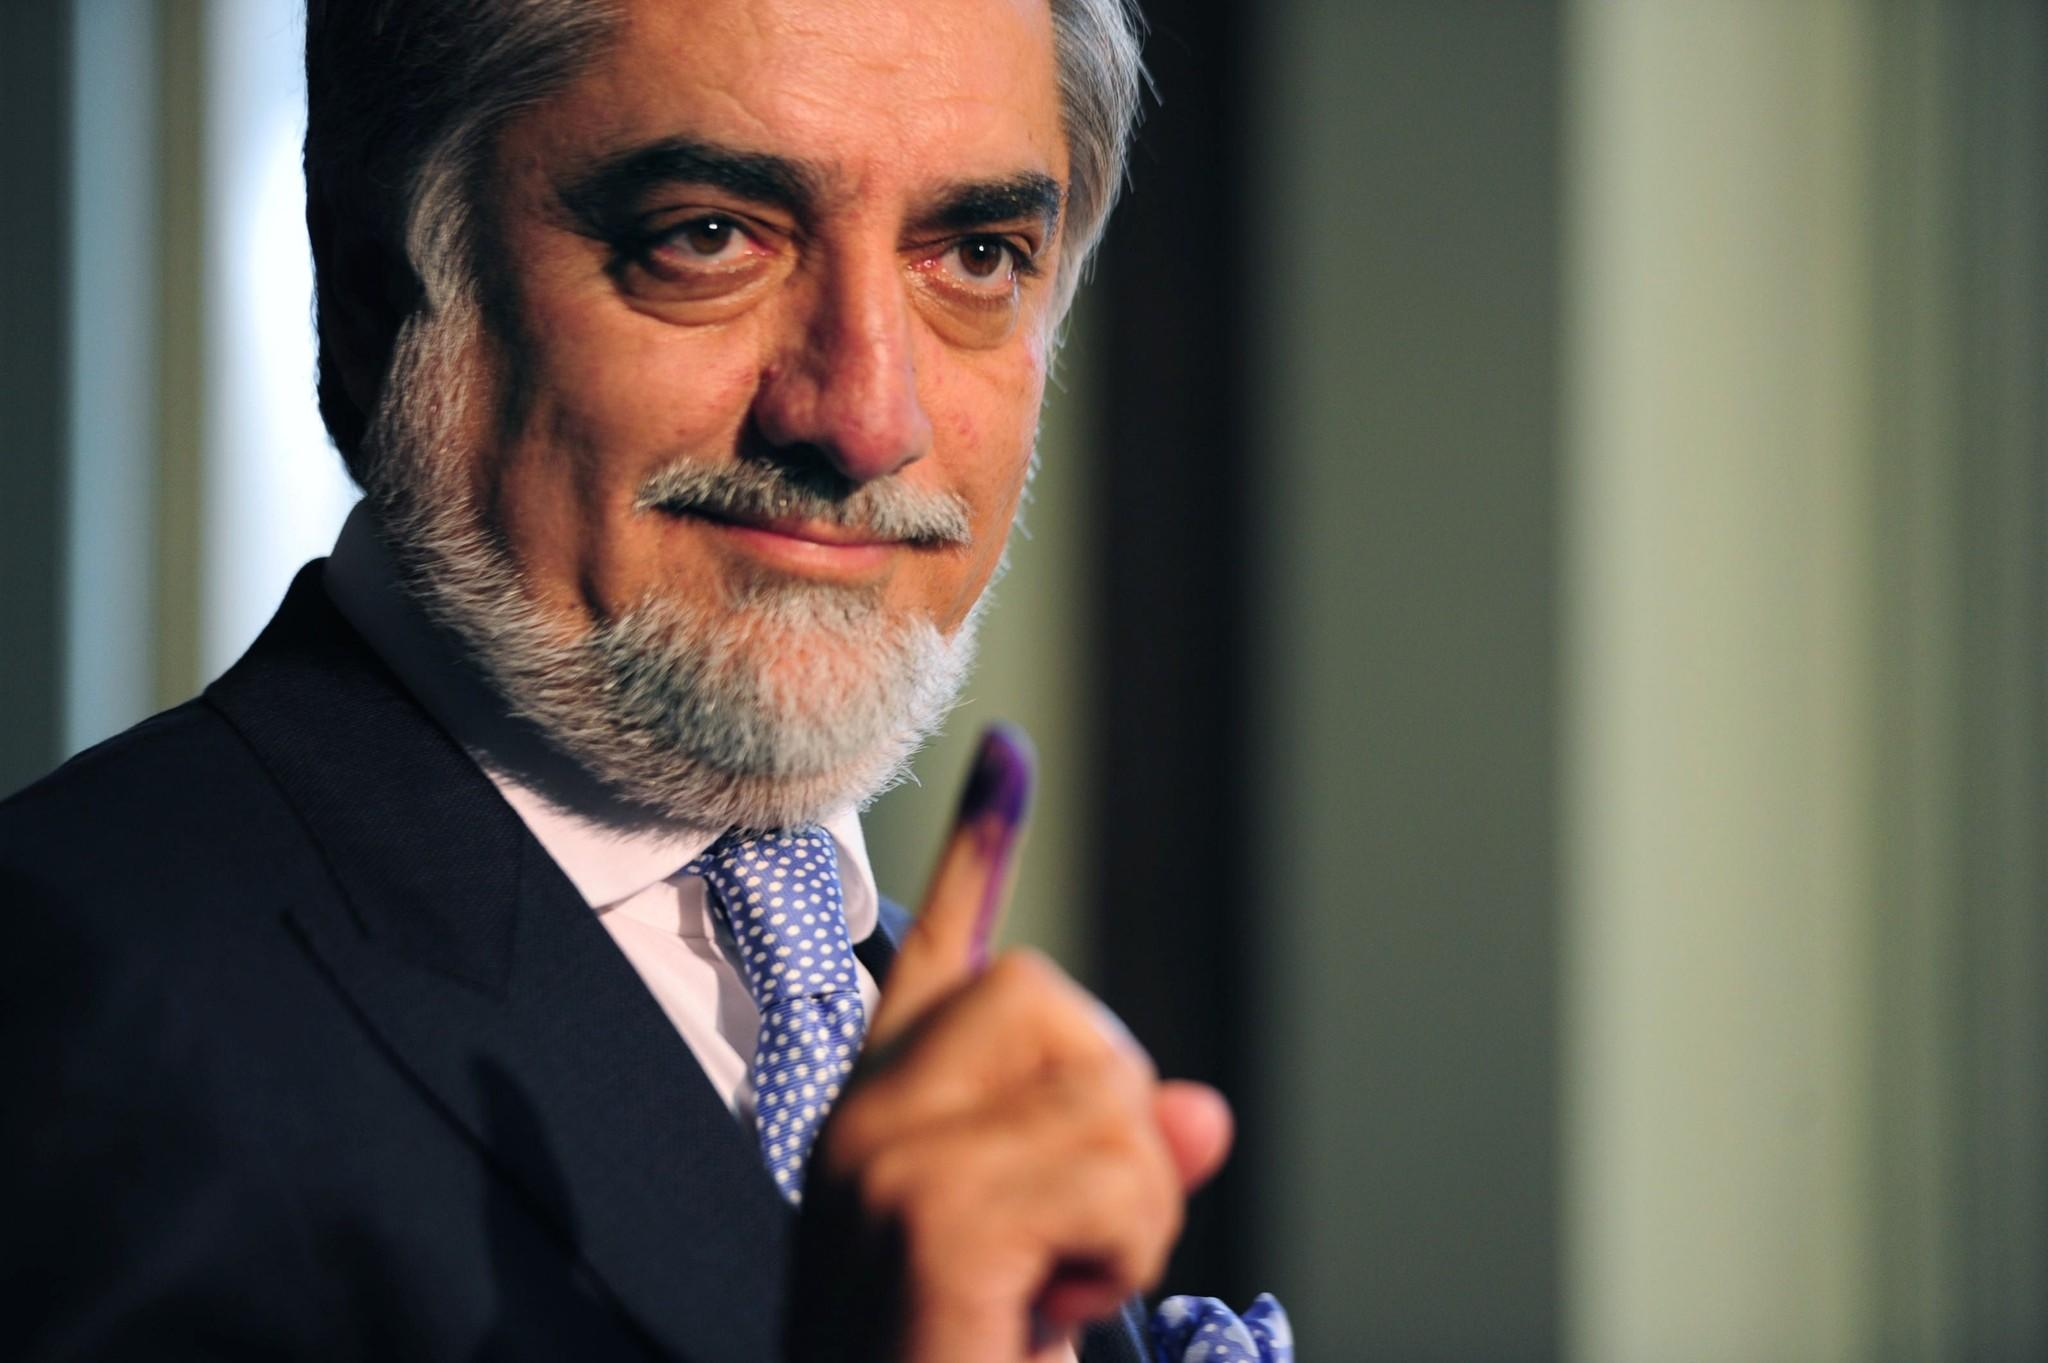 Afghan presidential candidate Abdullah Abdullah shows his inked finger as he casts his vote at a local polling station in Kabul.